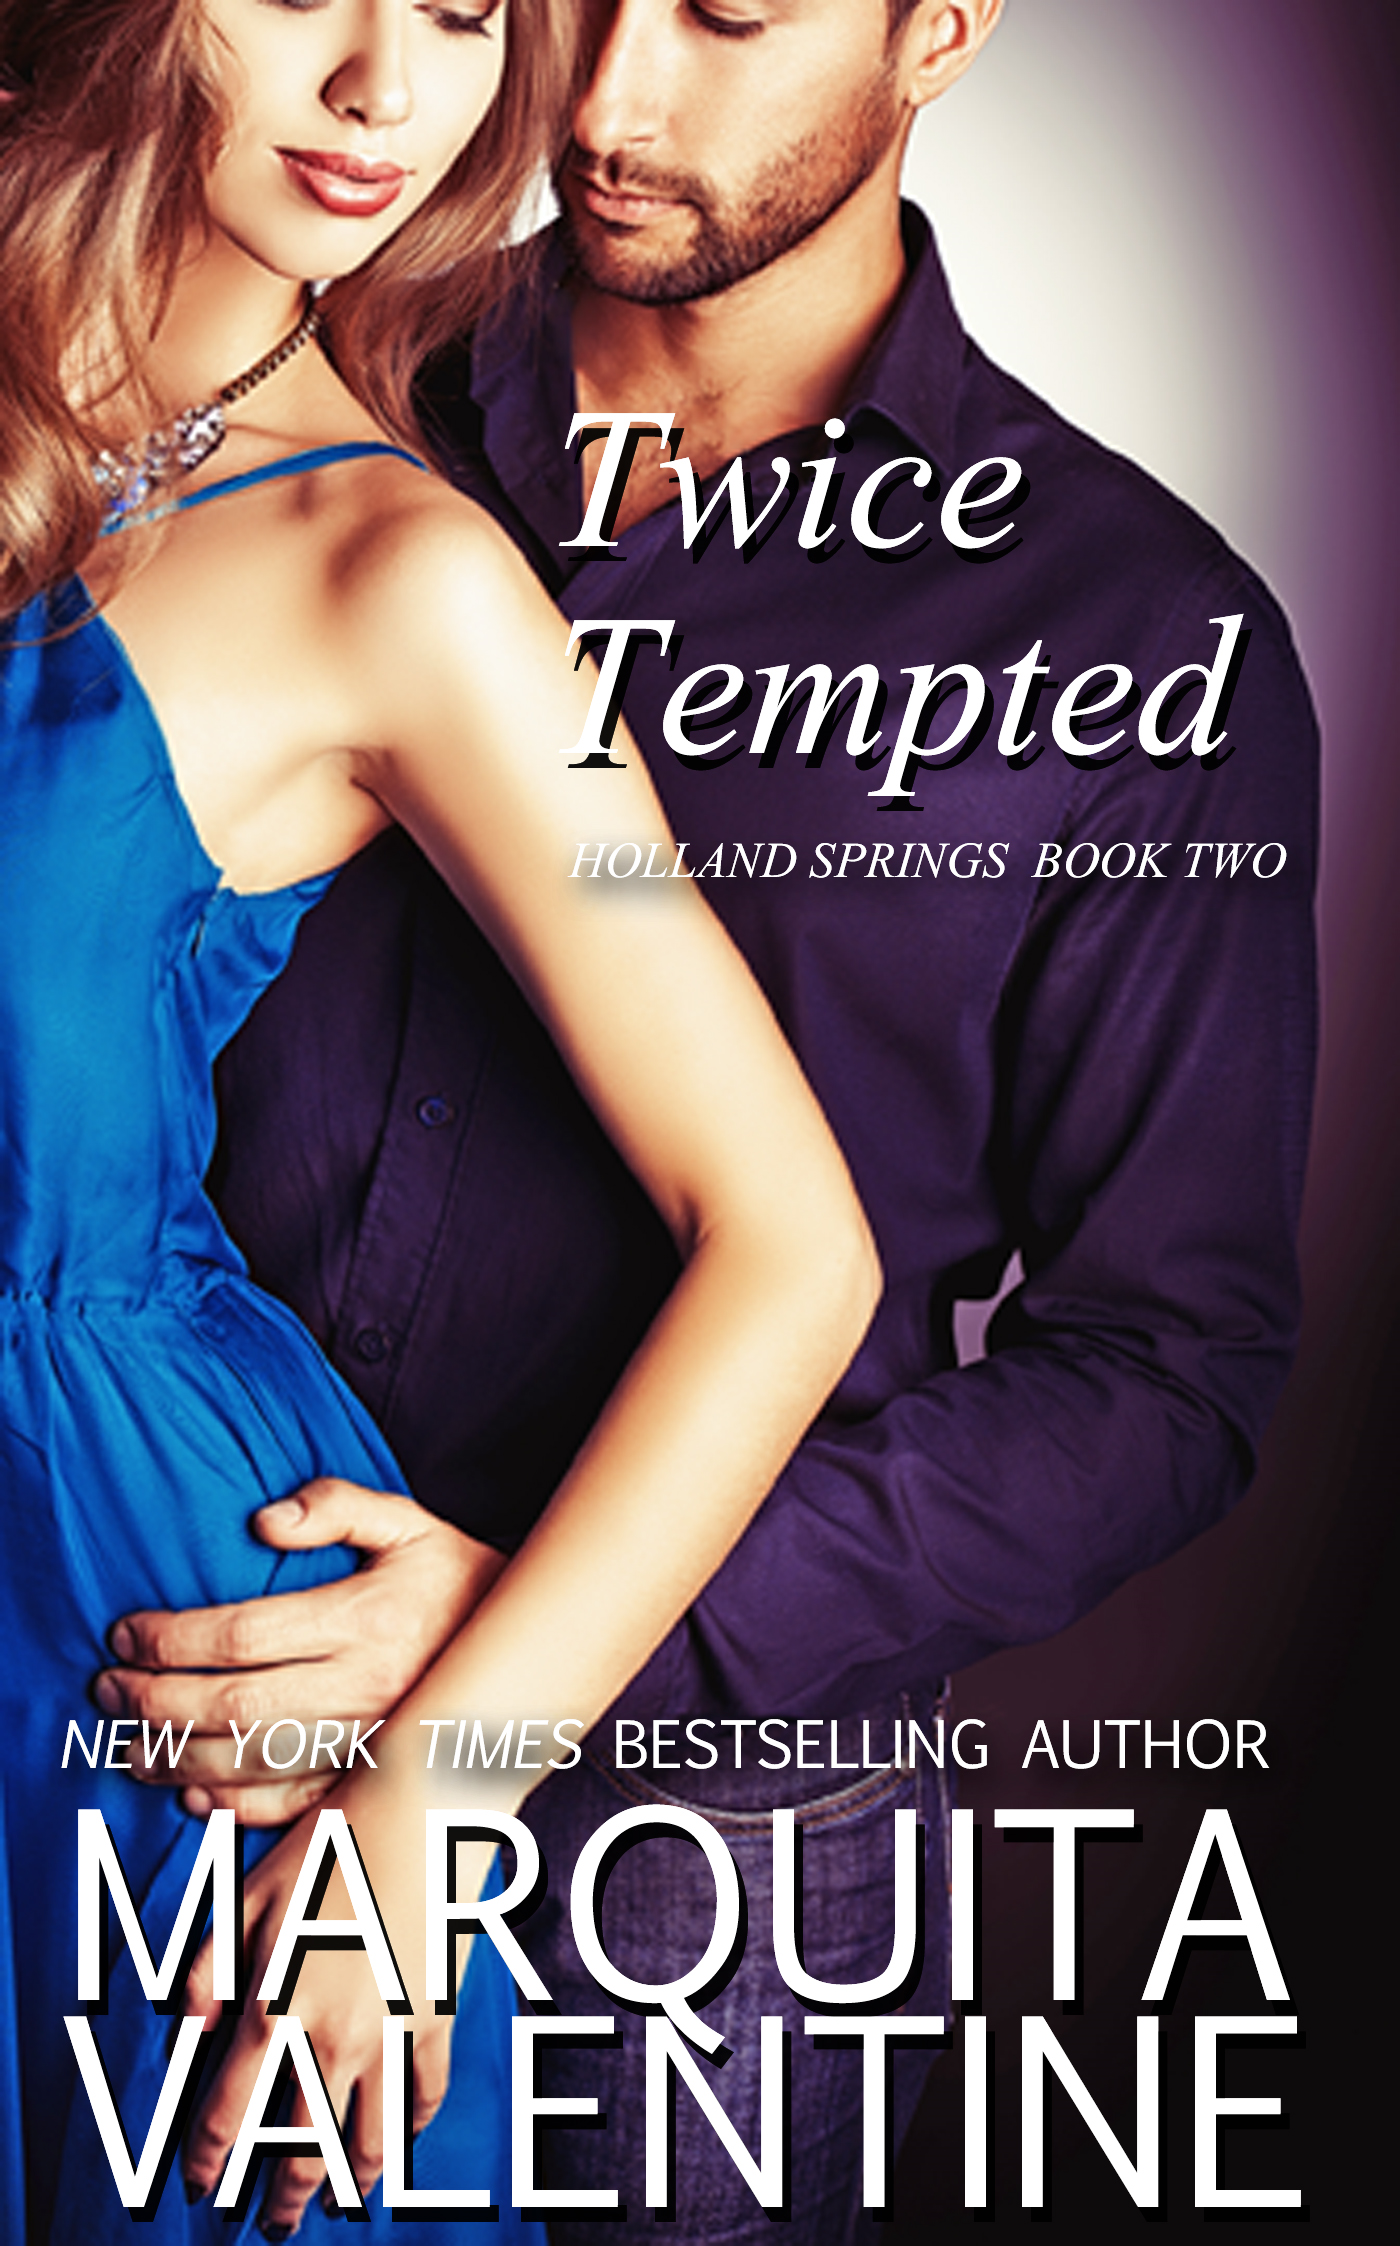 Marquita Valentine - Twice Tempted (Holland Springs~ Book 2)